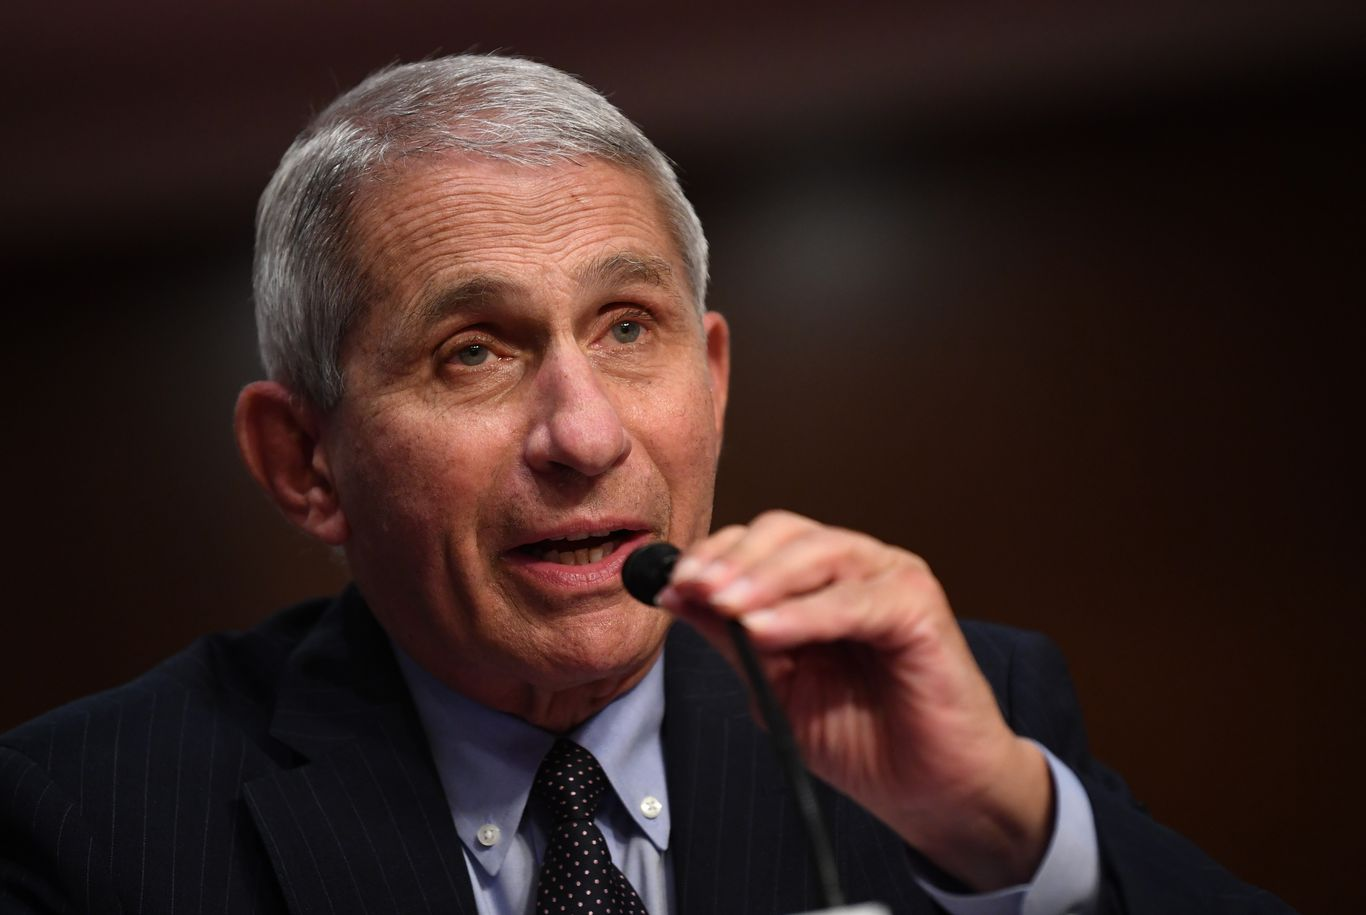 """Fauci: States with severe coronavirus outbreaks """"should seriously look at shutting down"""""""